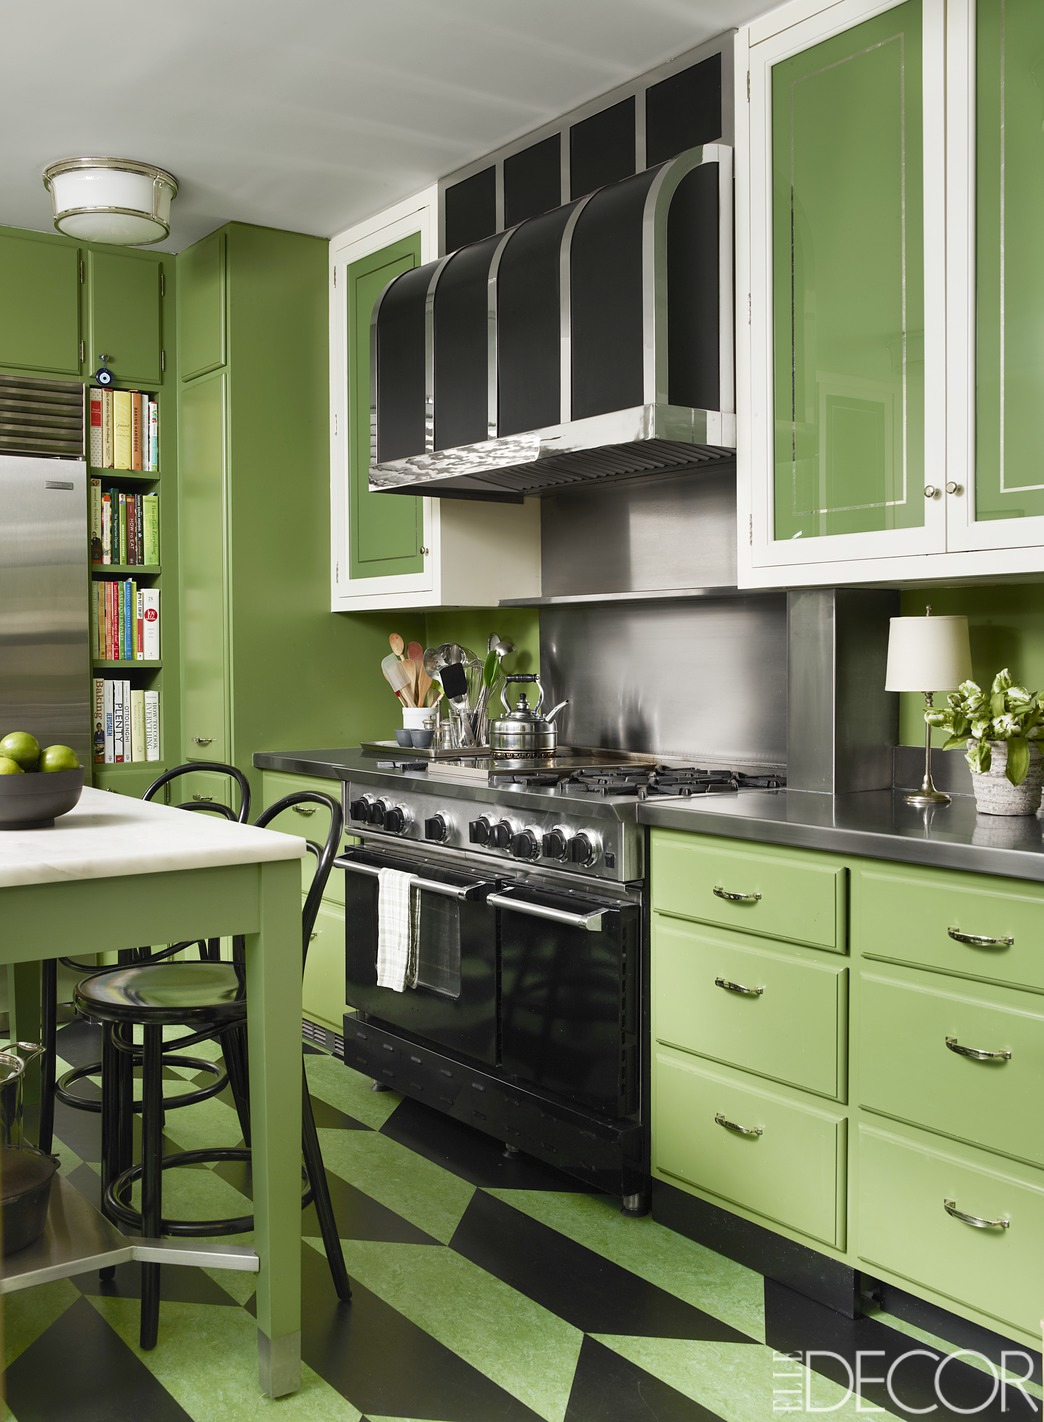 Permalink to Images Of Kitchen Cabinets Design